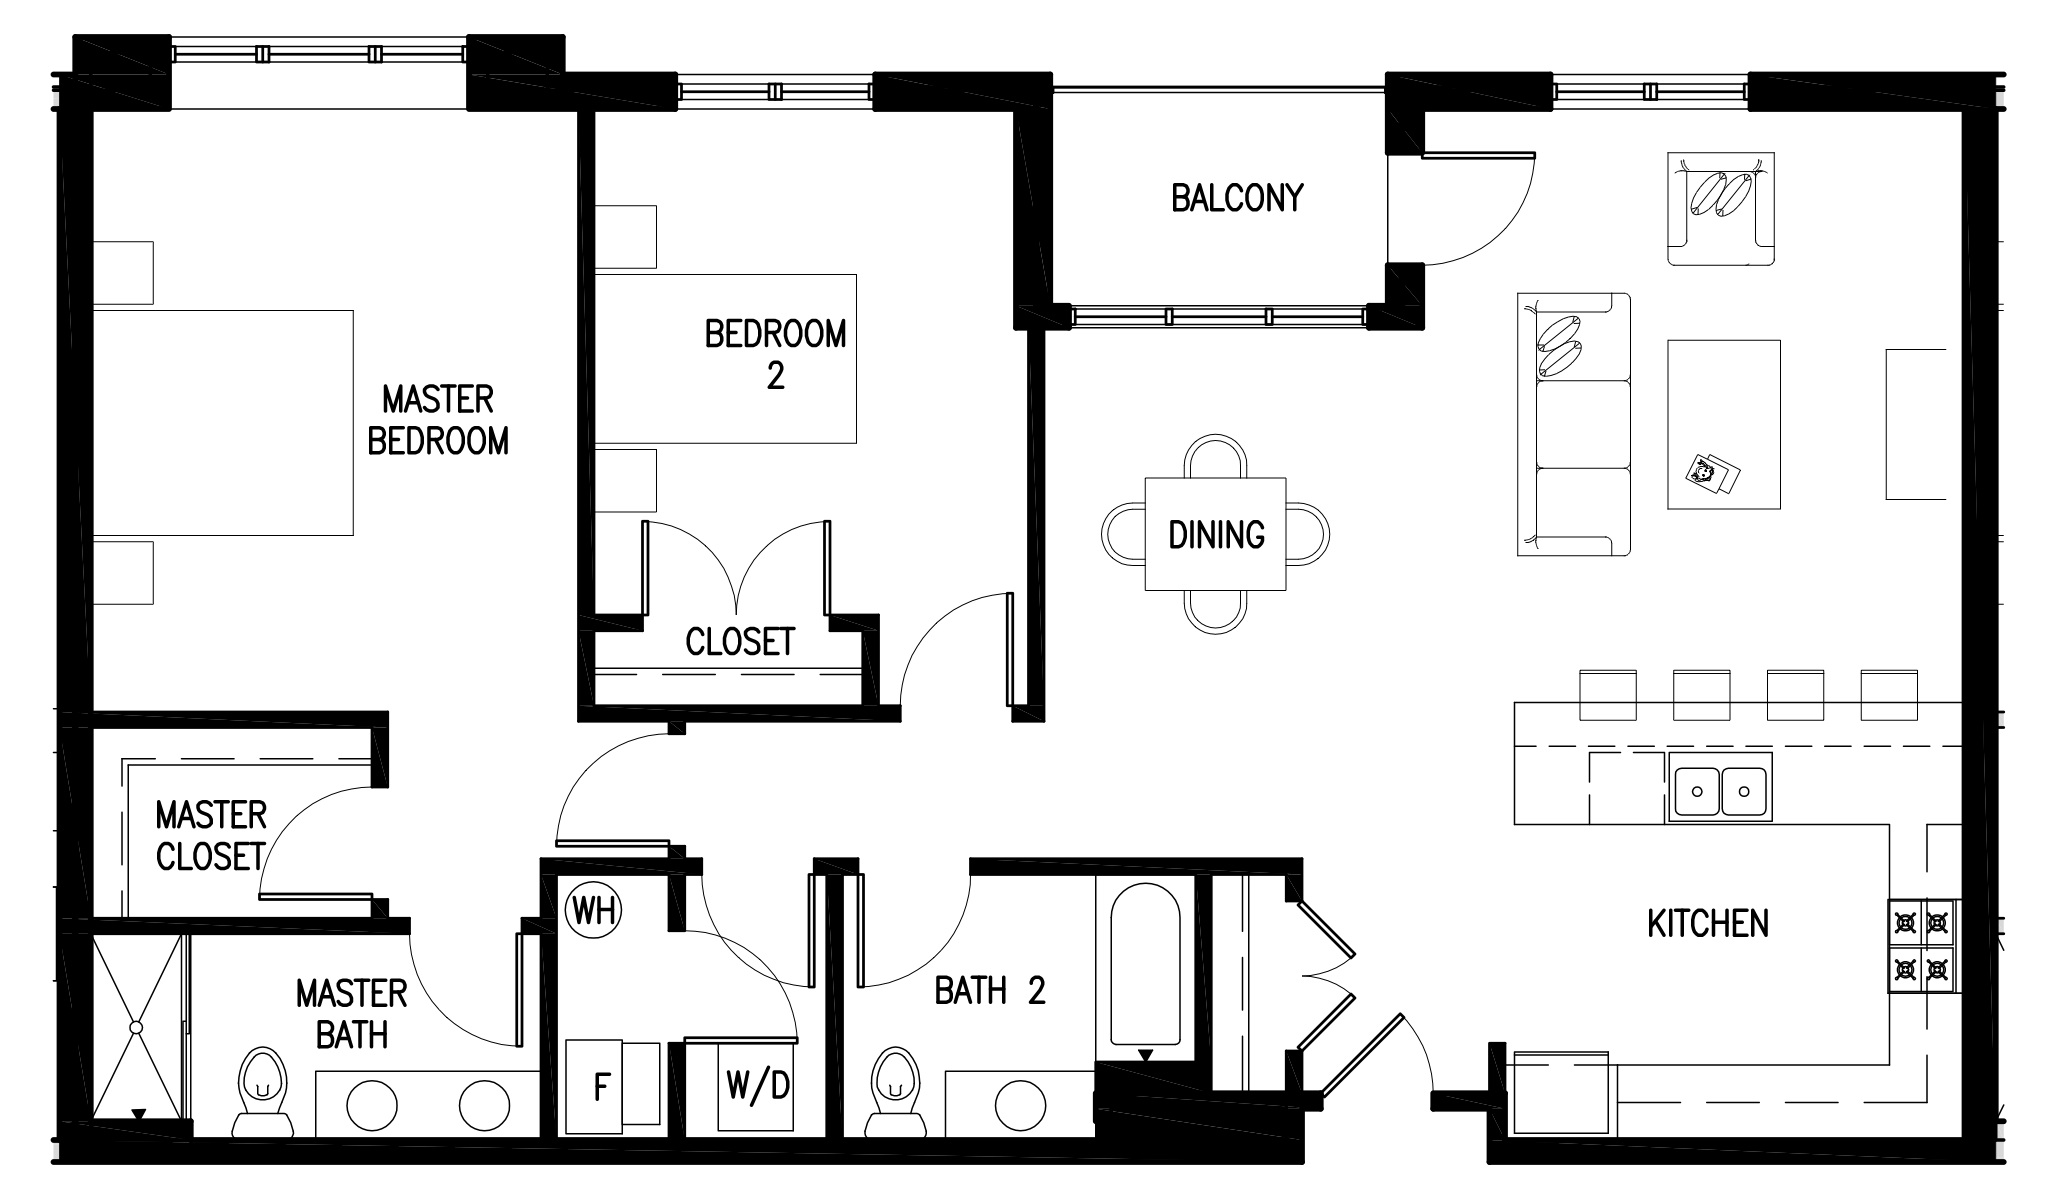 Unit A's have 2 bedrooms, 2 baths and are approximately 1,300 square feet.  Rental prices start at $2,695 per month. Only 1 left.